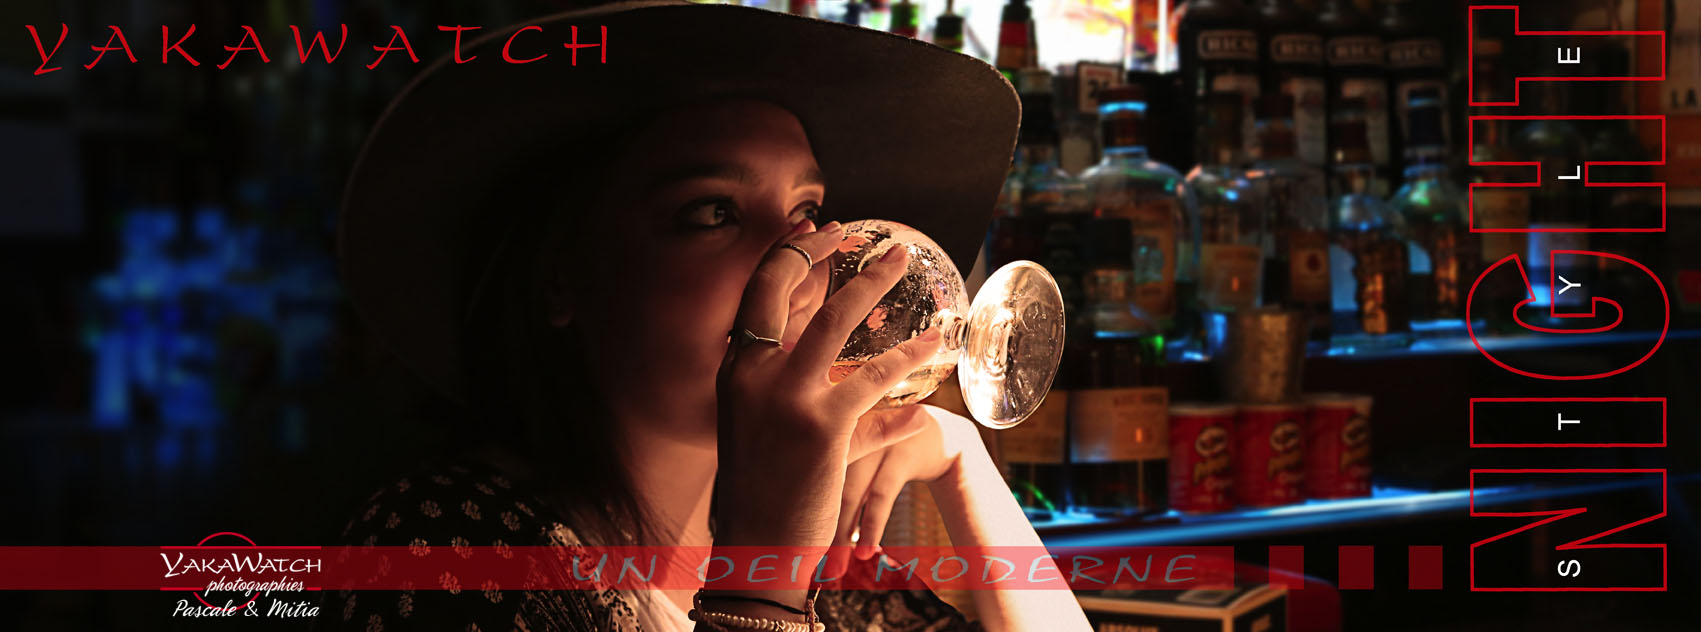 Lifestyle - Drink au bar - Mitia-Arcturus Photographe